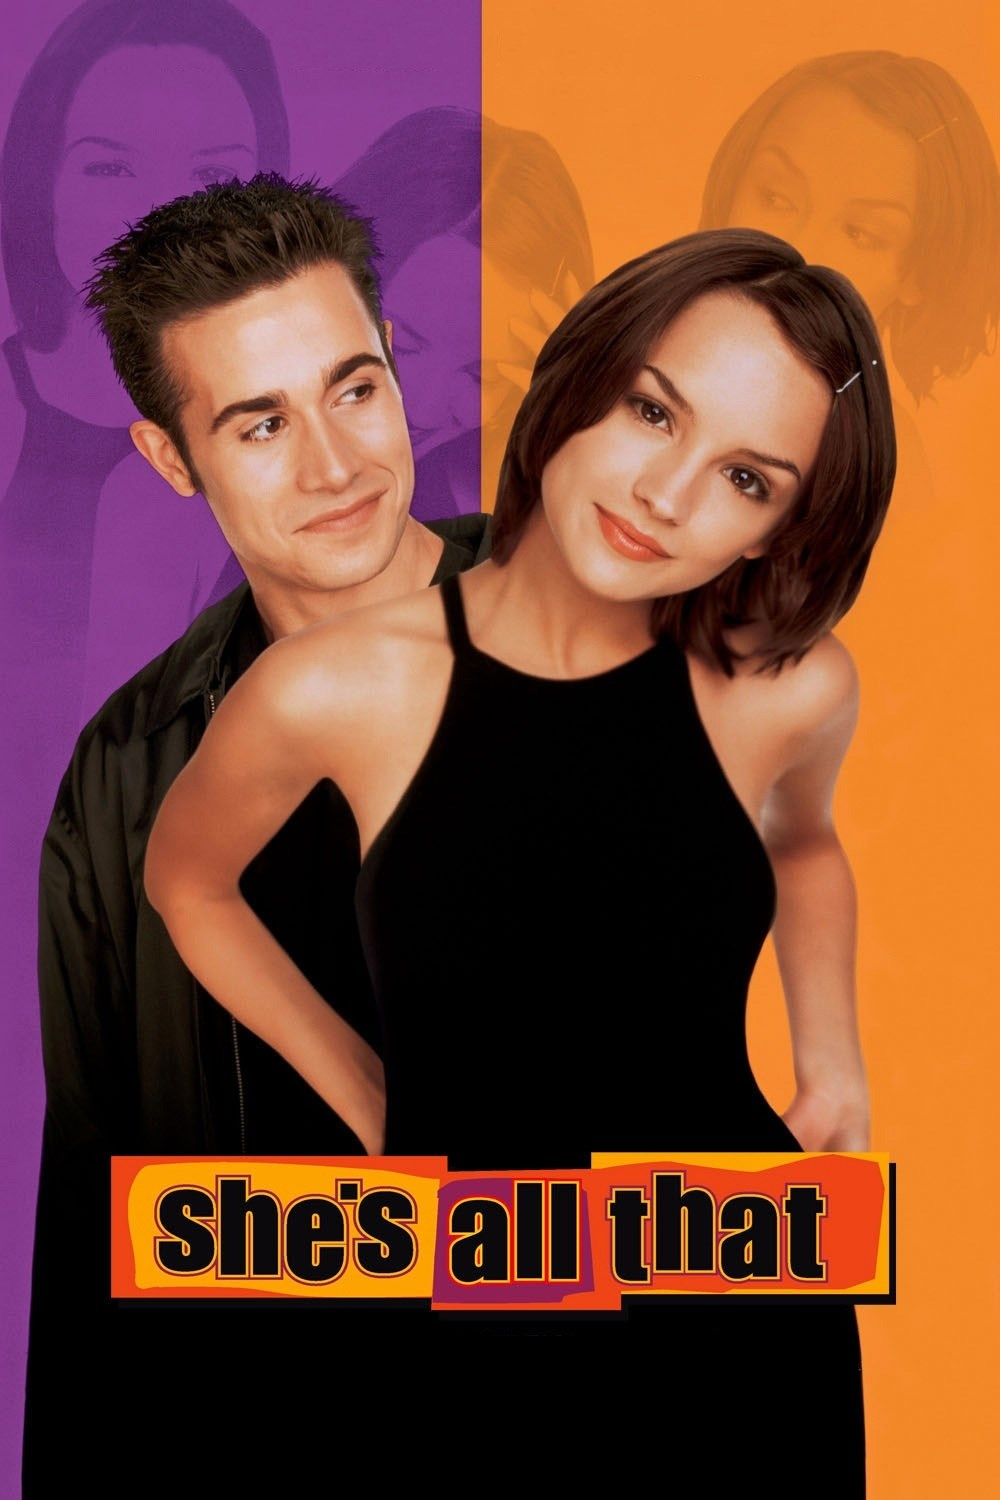 She S 19 And I M Almost 17 Do I Have A Chance Pics: Subtitles For She's All That